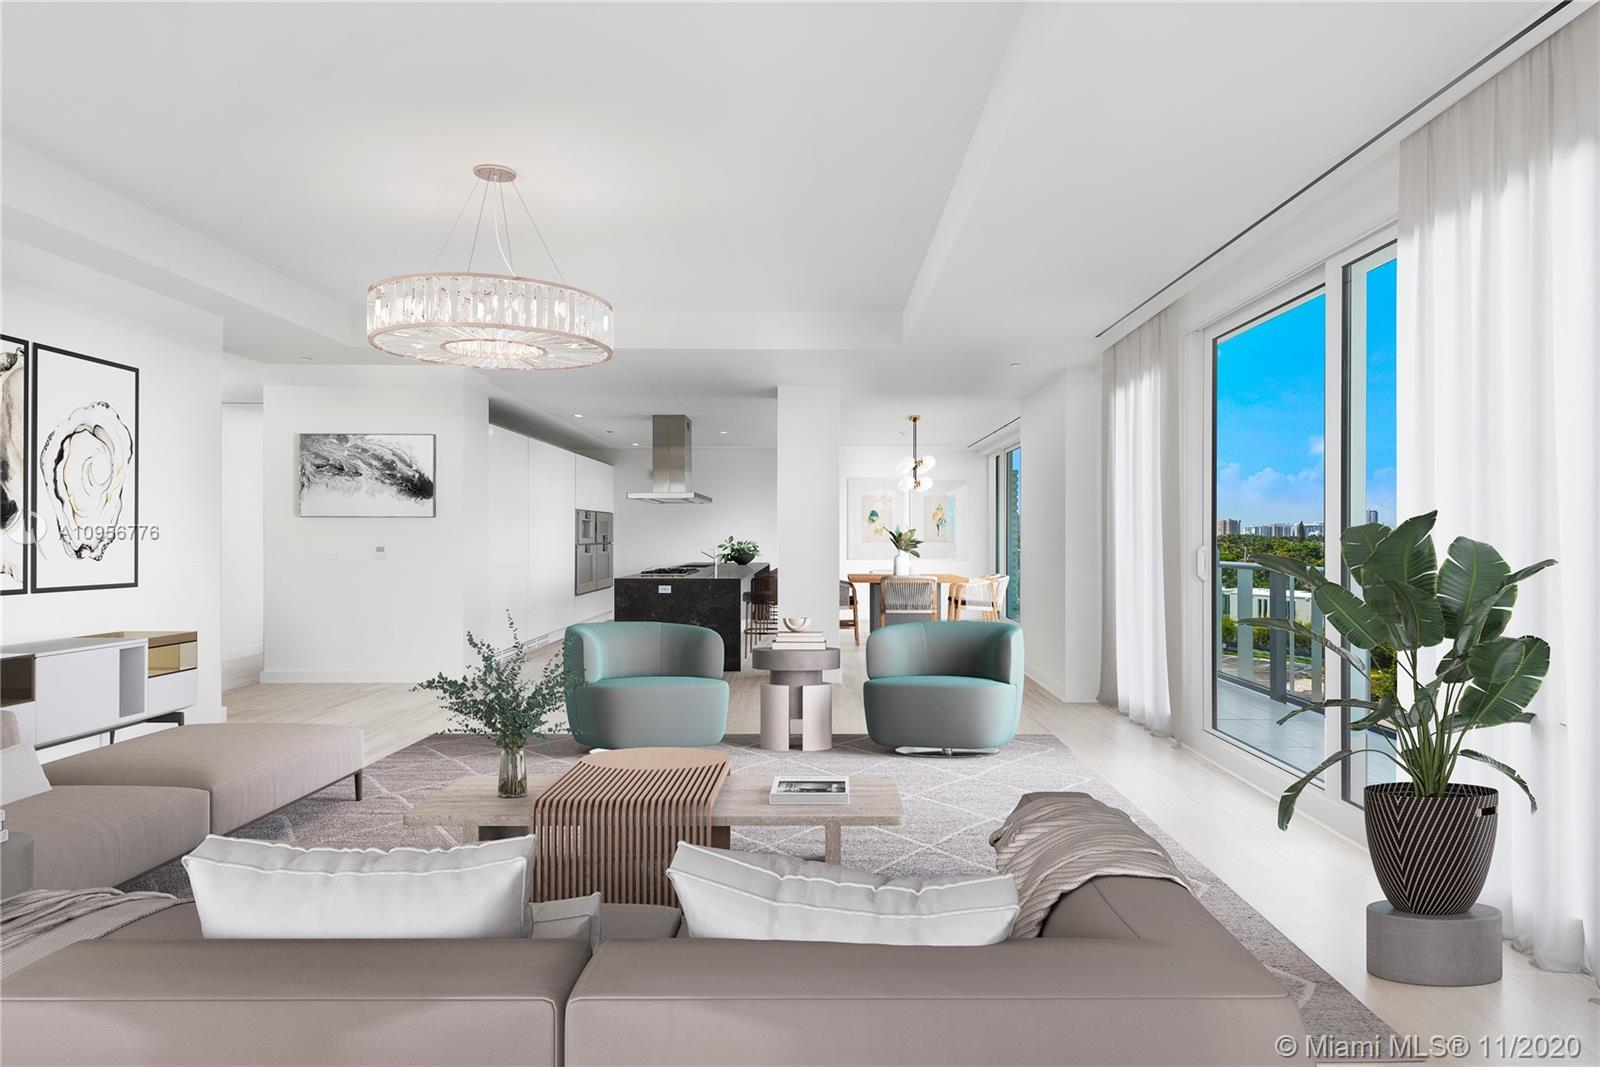 Light-filled, open, corner residence with floor-to-ceiling glass and stunning views of Biscayne Bay